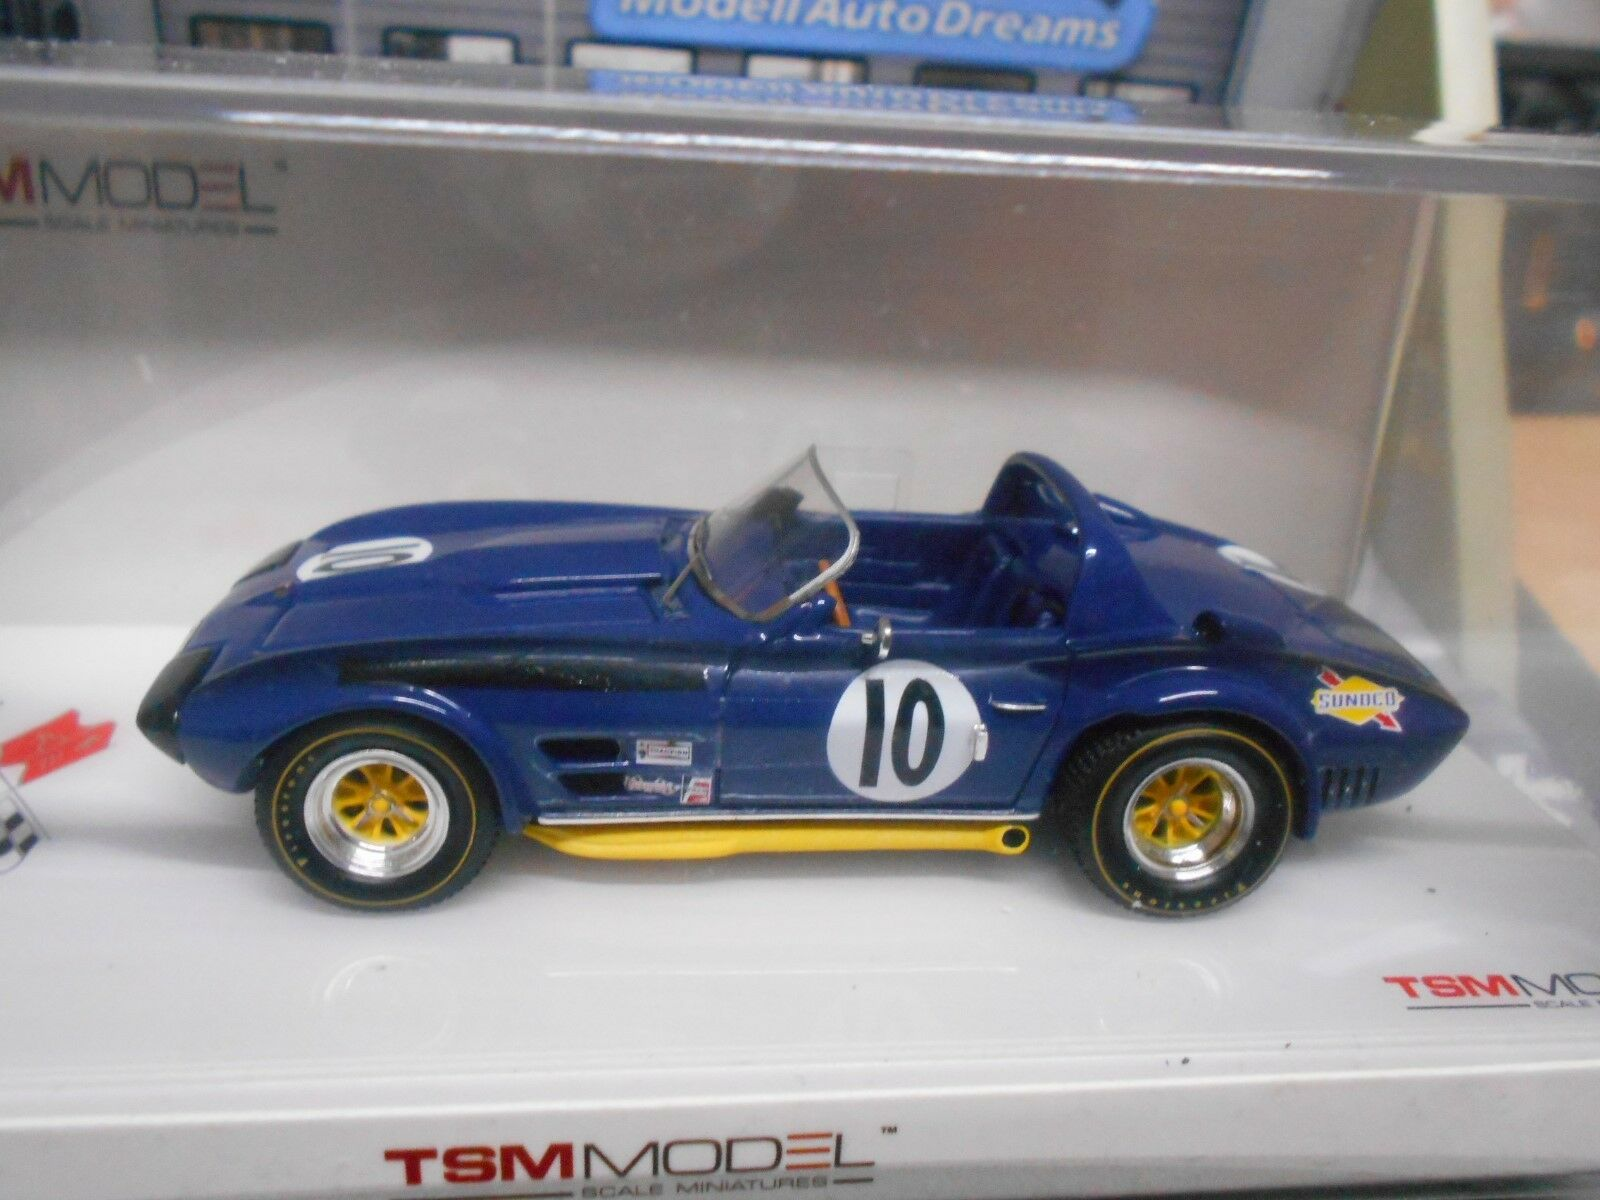 CHEVROLET Corvette c2 GRAND SPORT roadsster 1966 Penske sebri SP resin TSM 1:43